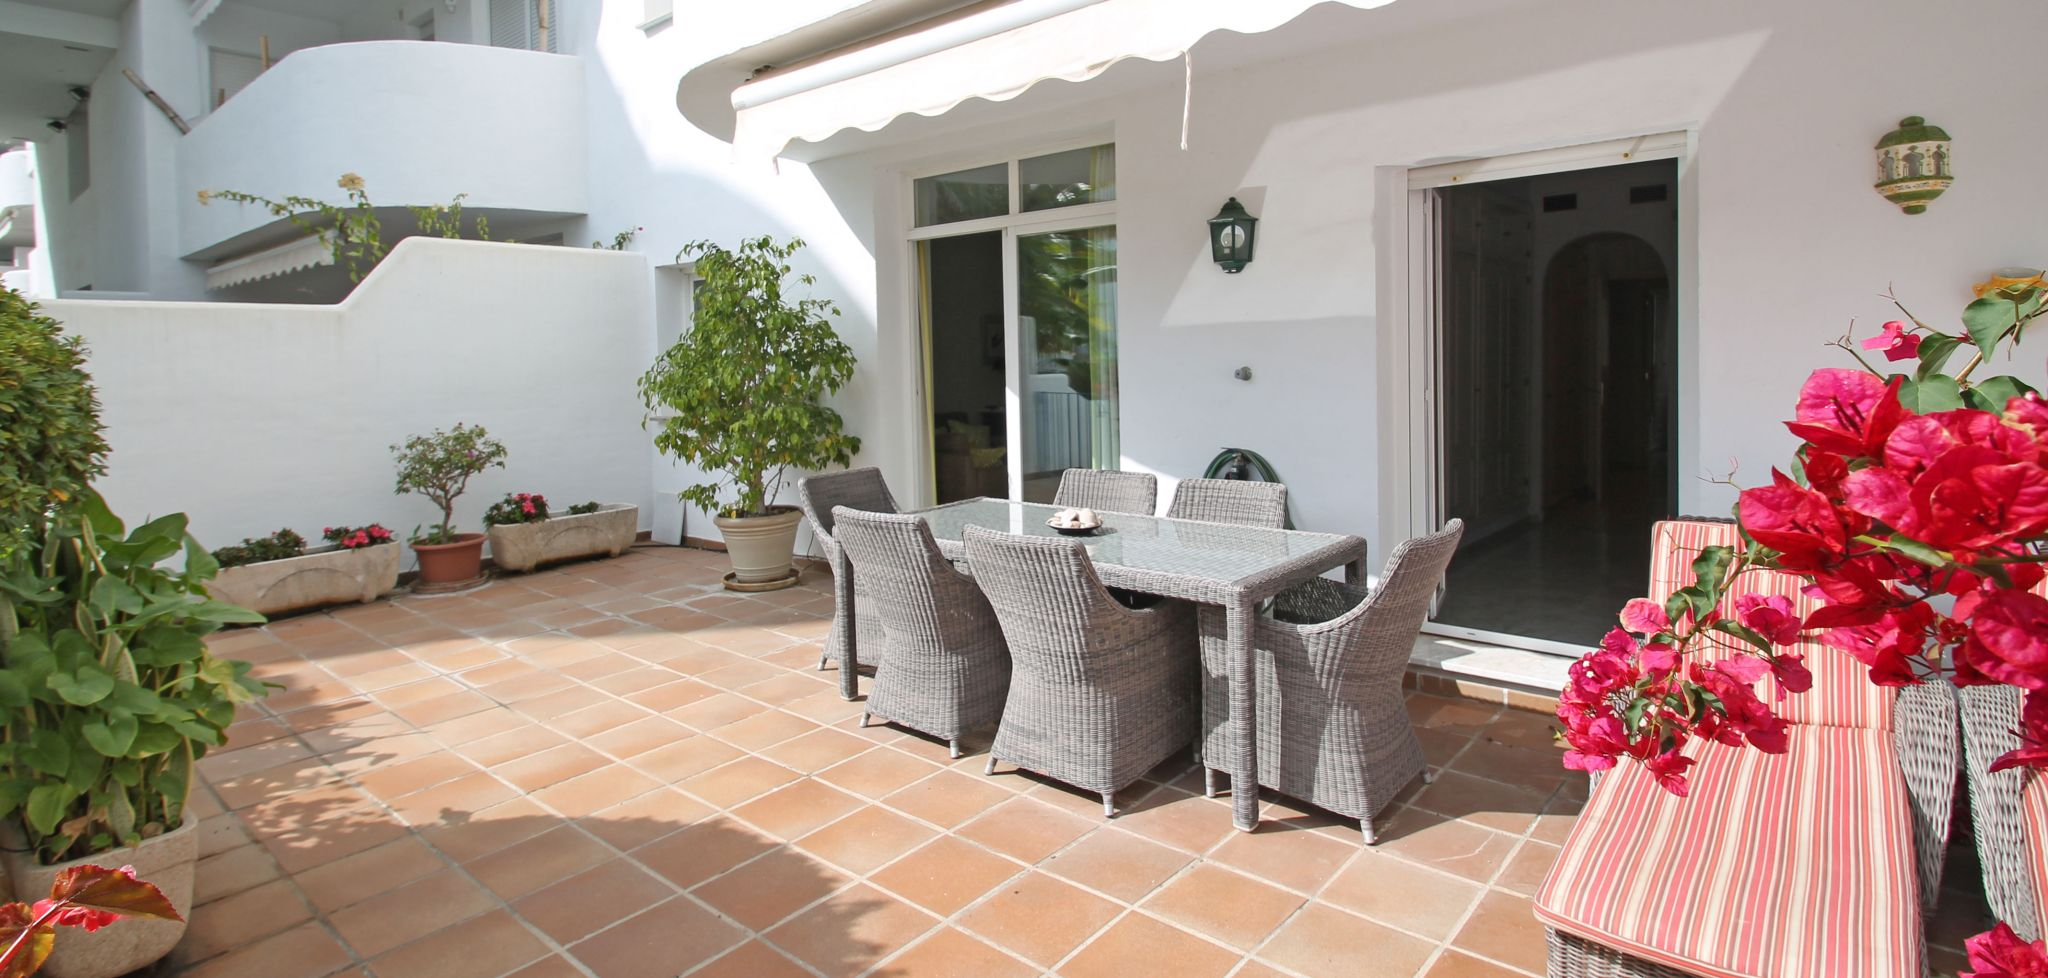 Four bedroom ground floor apartment within walking distance to the beach in Marbella